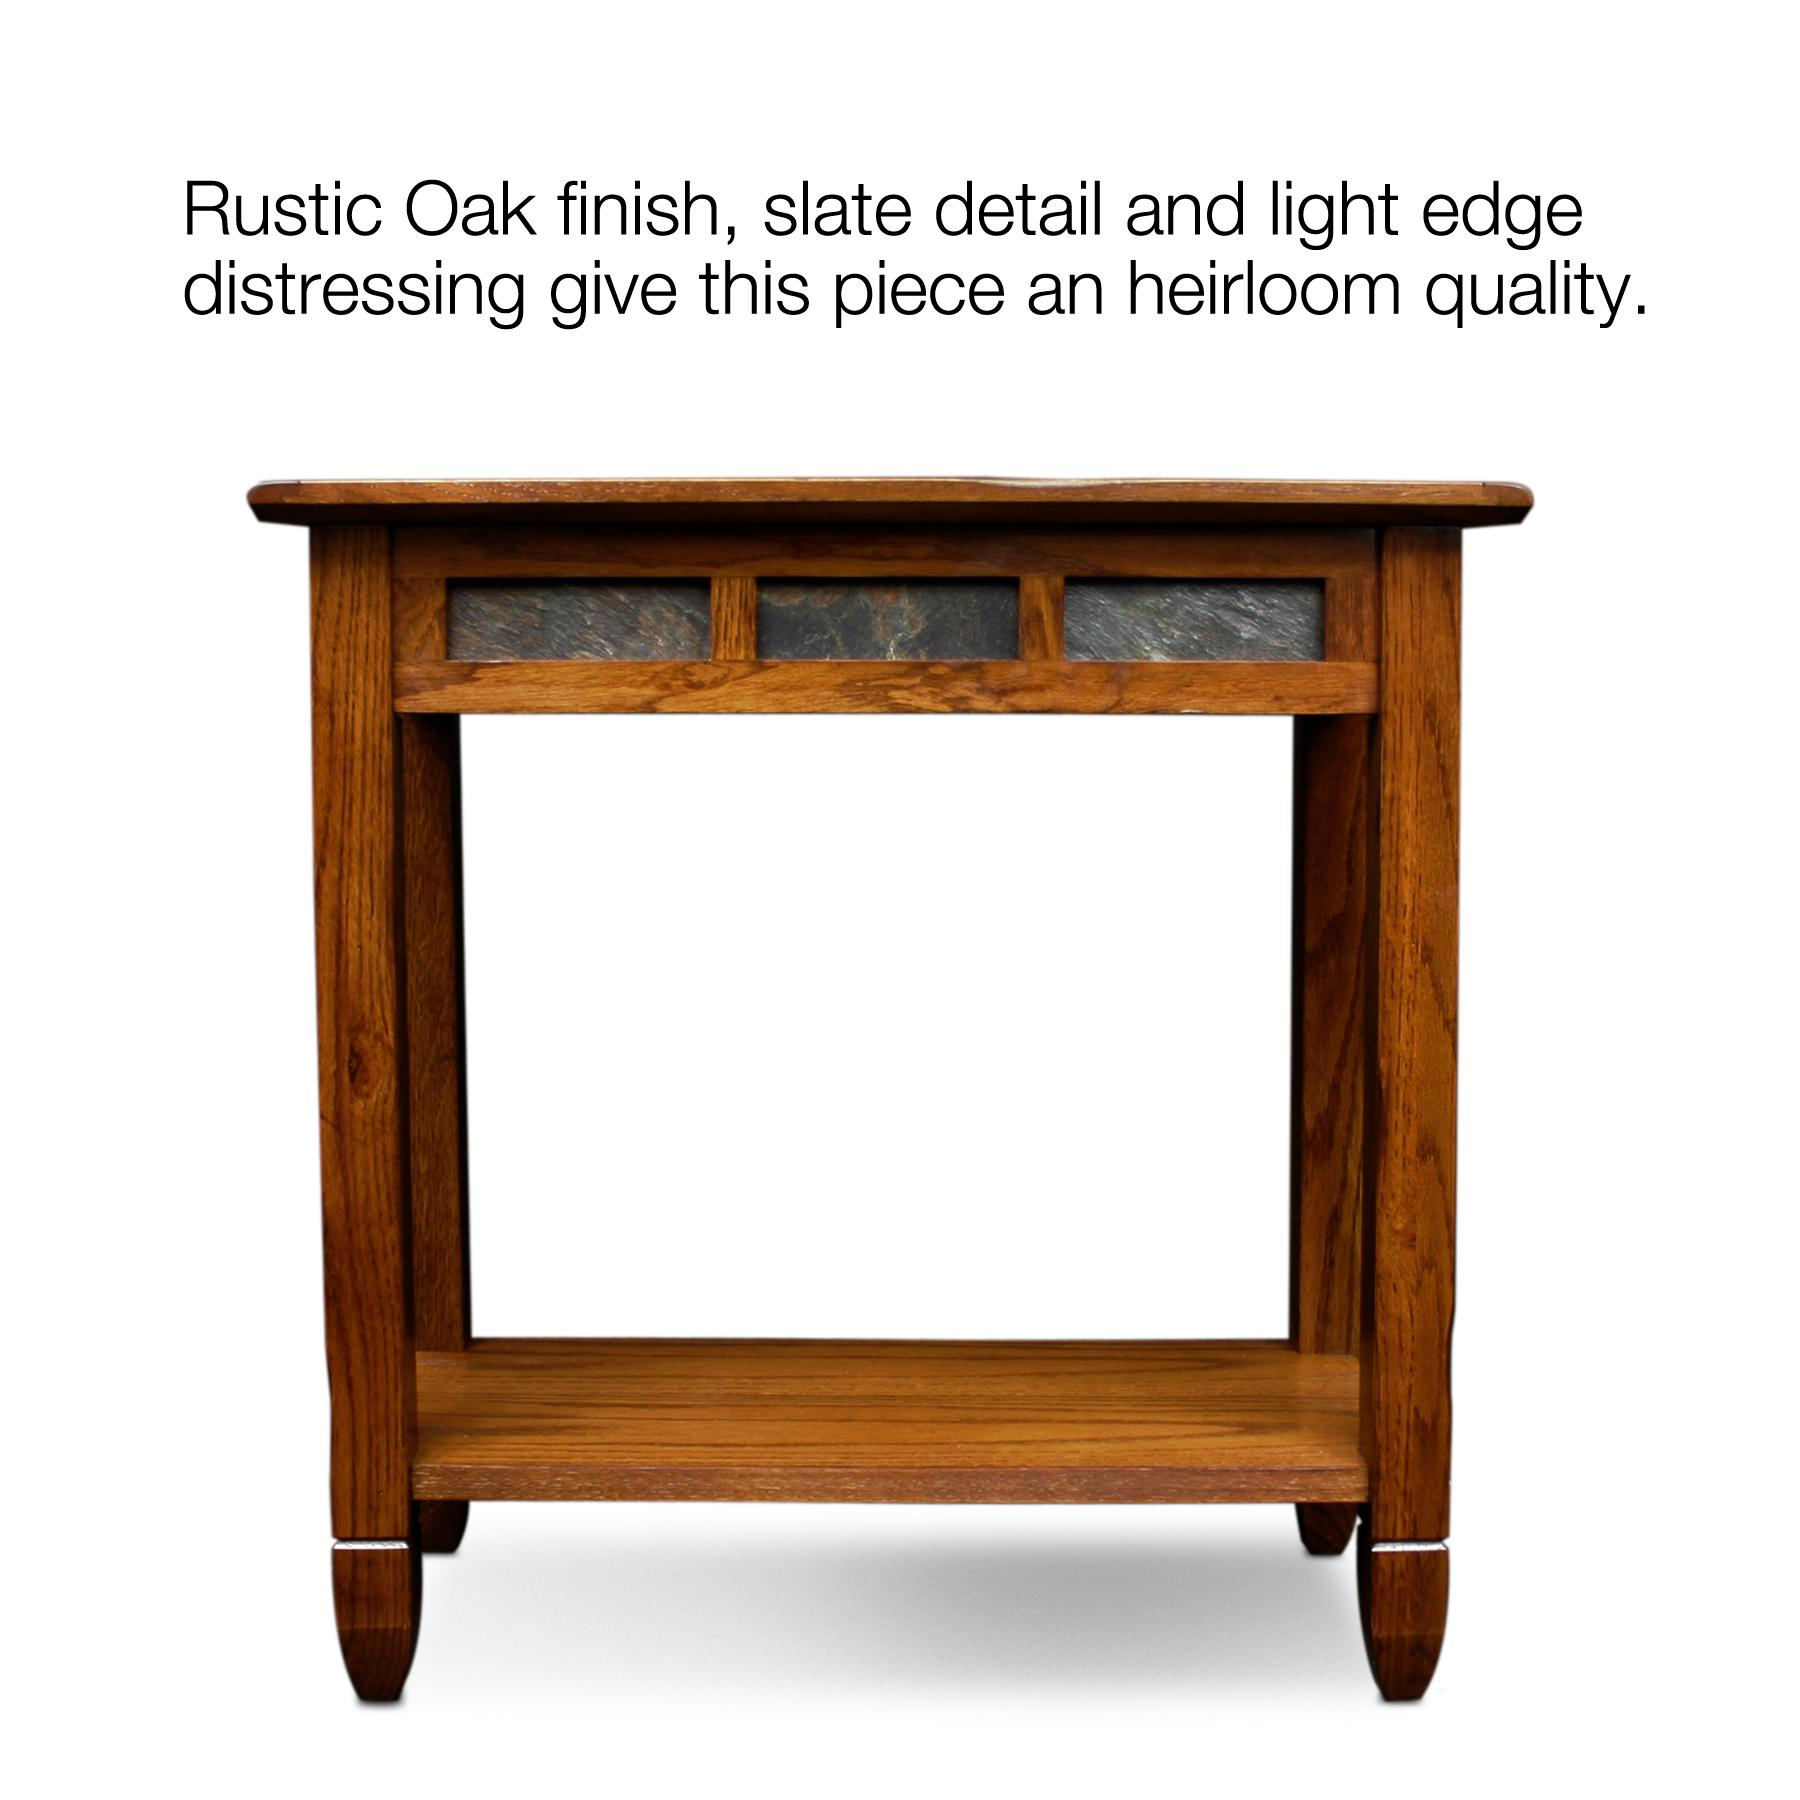 10060 Rustic Oak Chairside Table Rustic Oak Finish Distressed Running . Full resolution‎  portrait, nominally Width 1800 Height 1800 pixels, portrait with #793B0F.